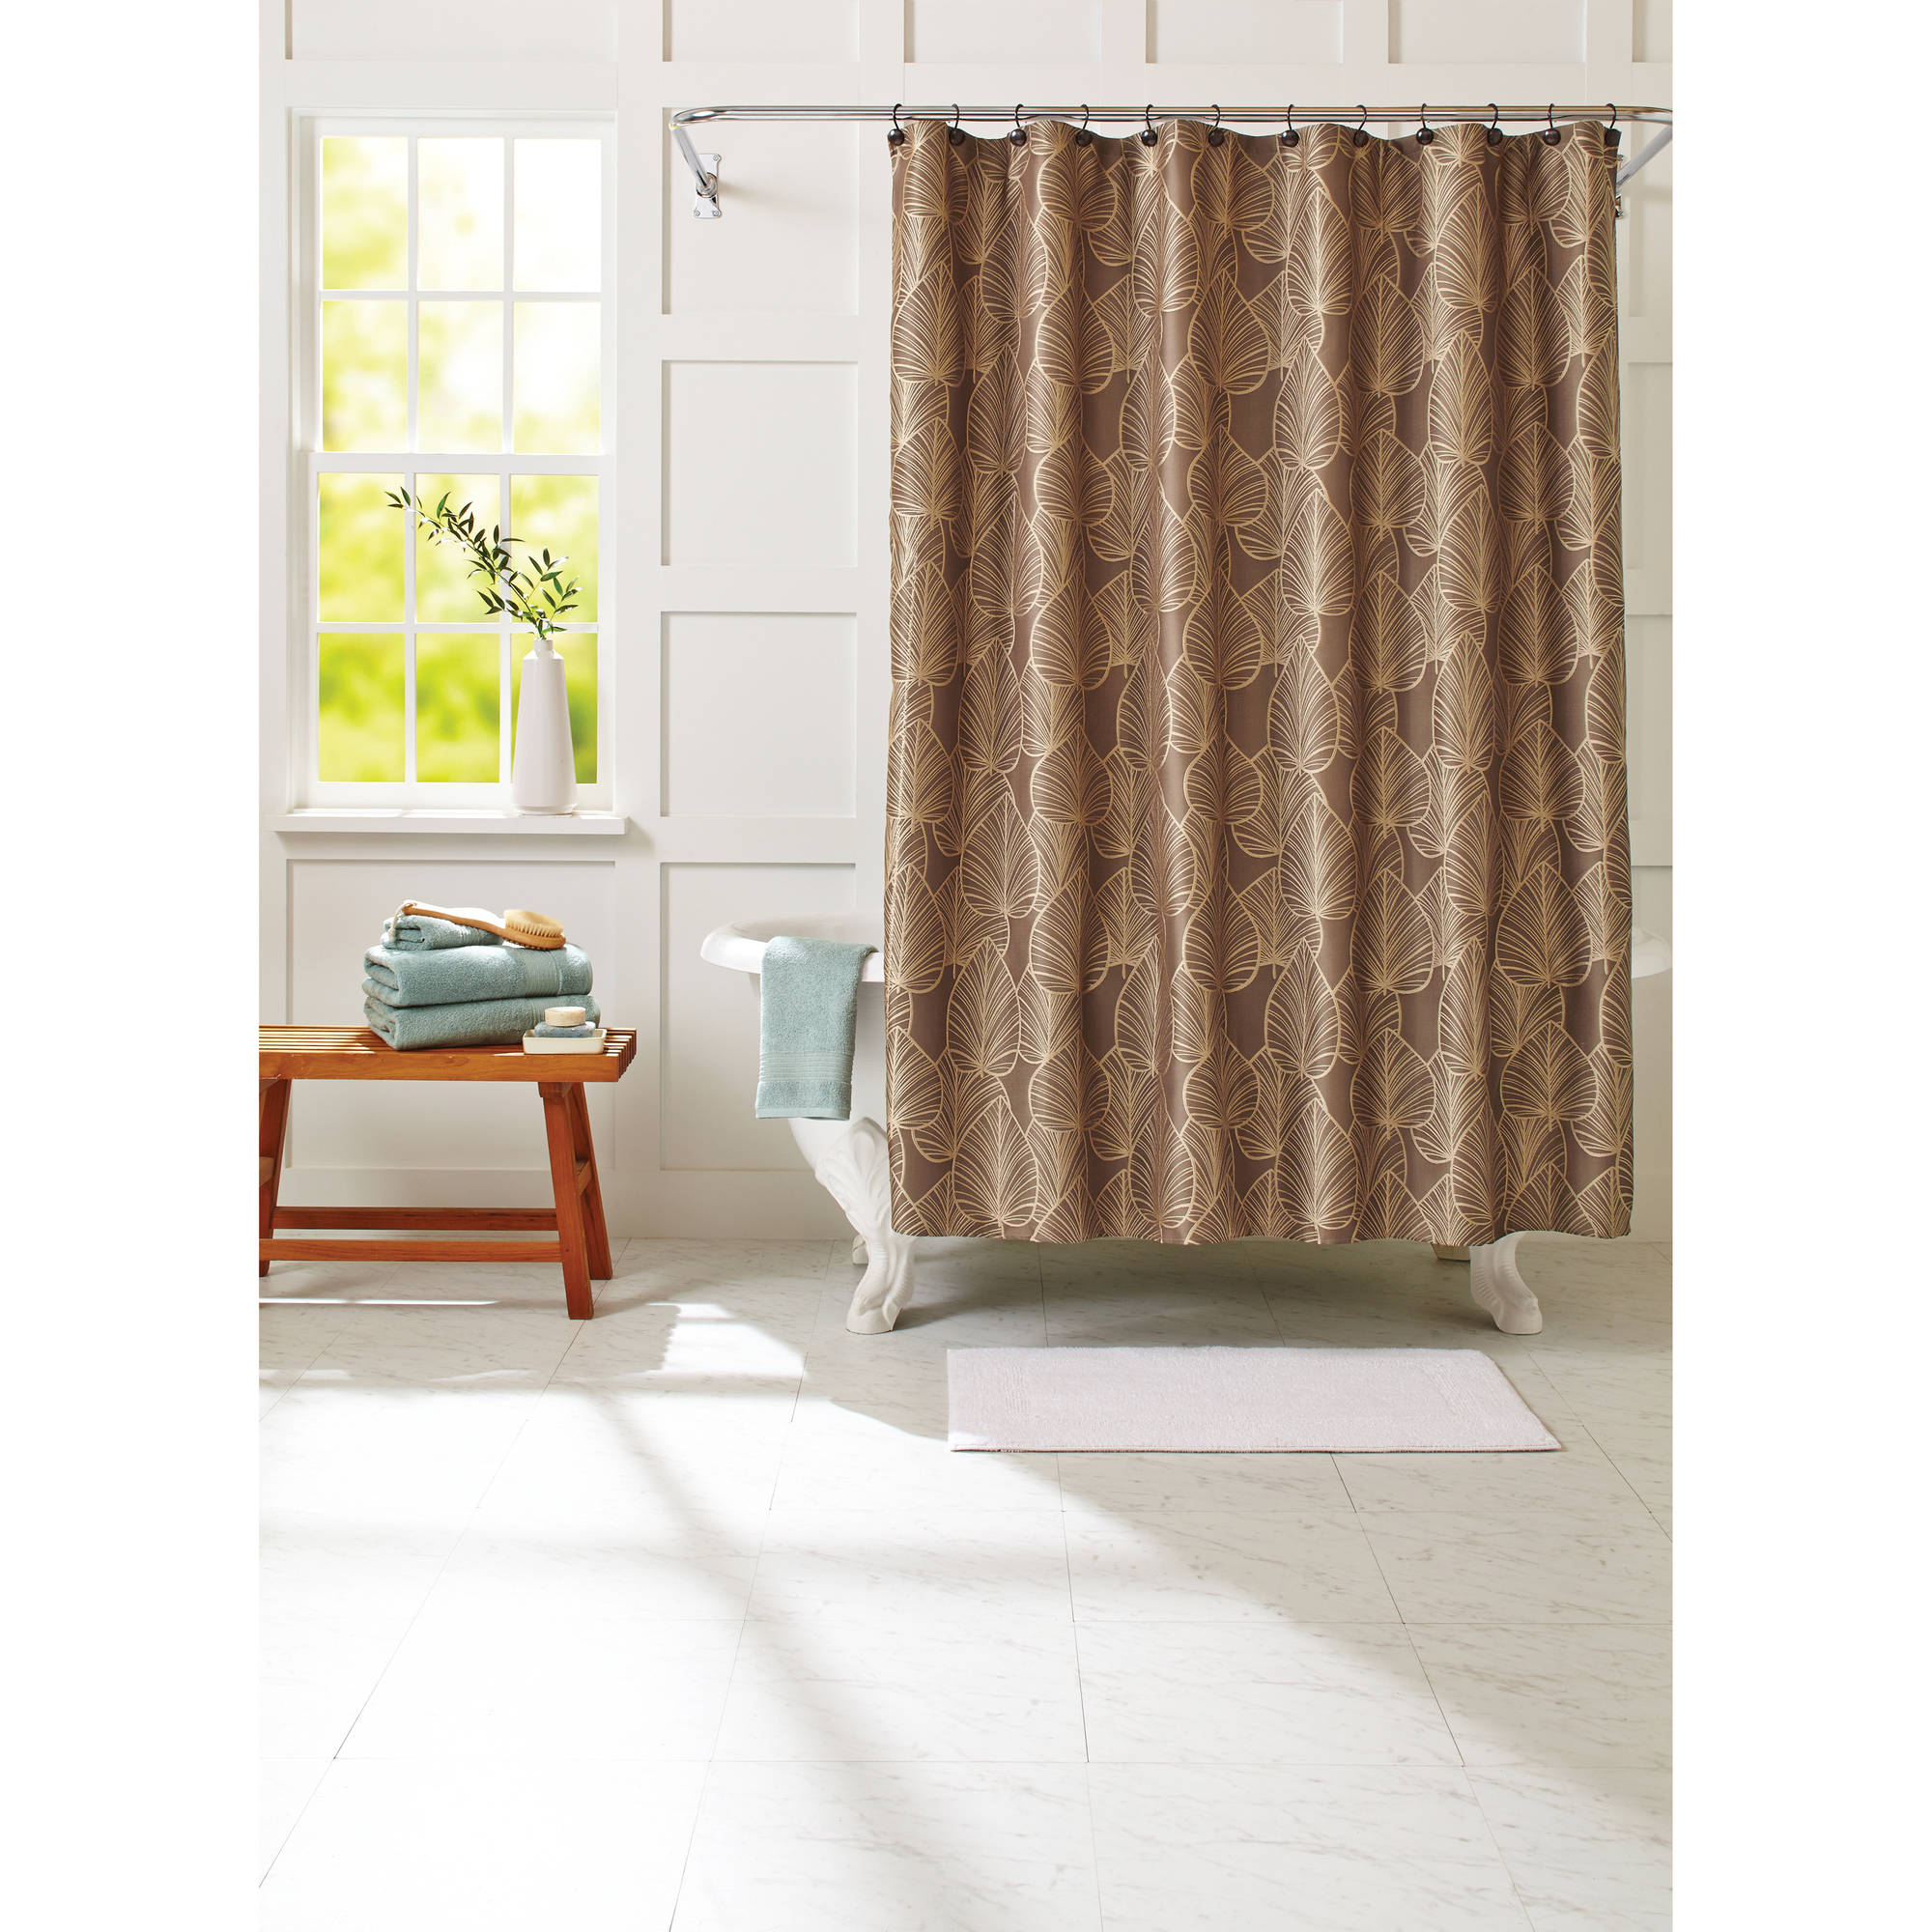 Better Homes And Gardens Leaves 13 Piece Textured Fabric Shower Curtain  Set, Hooks Included